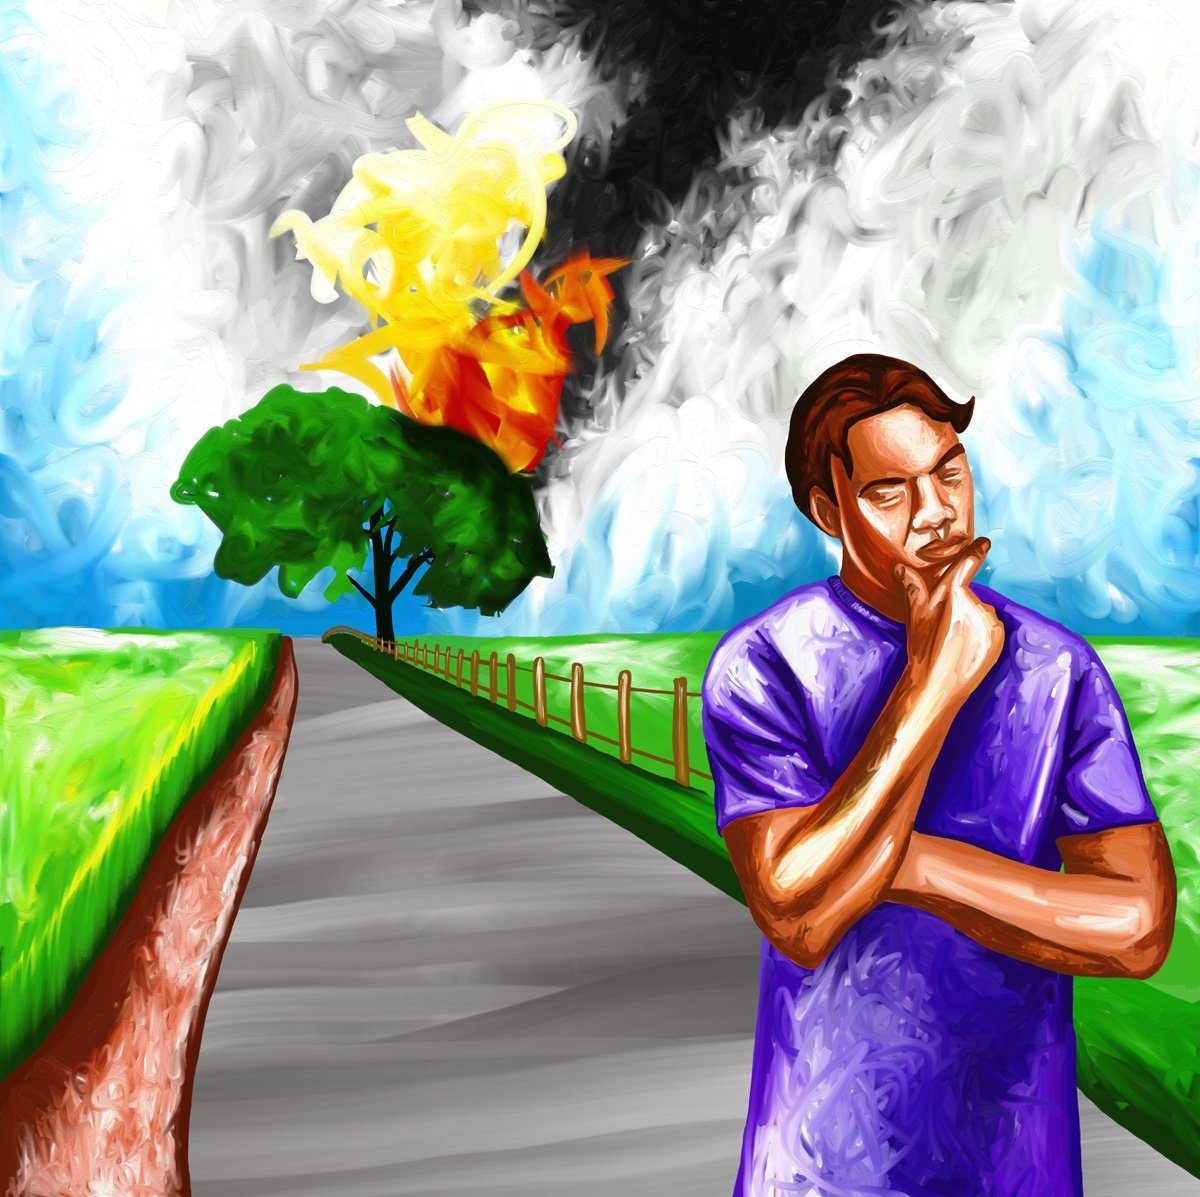 The image shows a piece of artwork by Jina Wallwork. It is a digital painting of a person walking away from a burning tree. Stylistically this piece of artwork has links with expressionism.